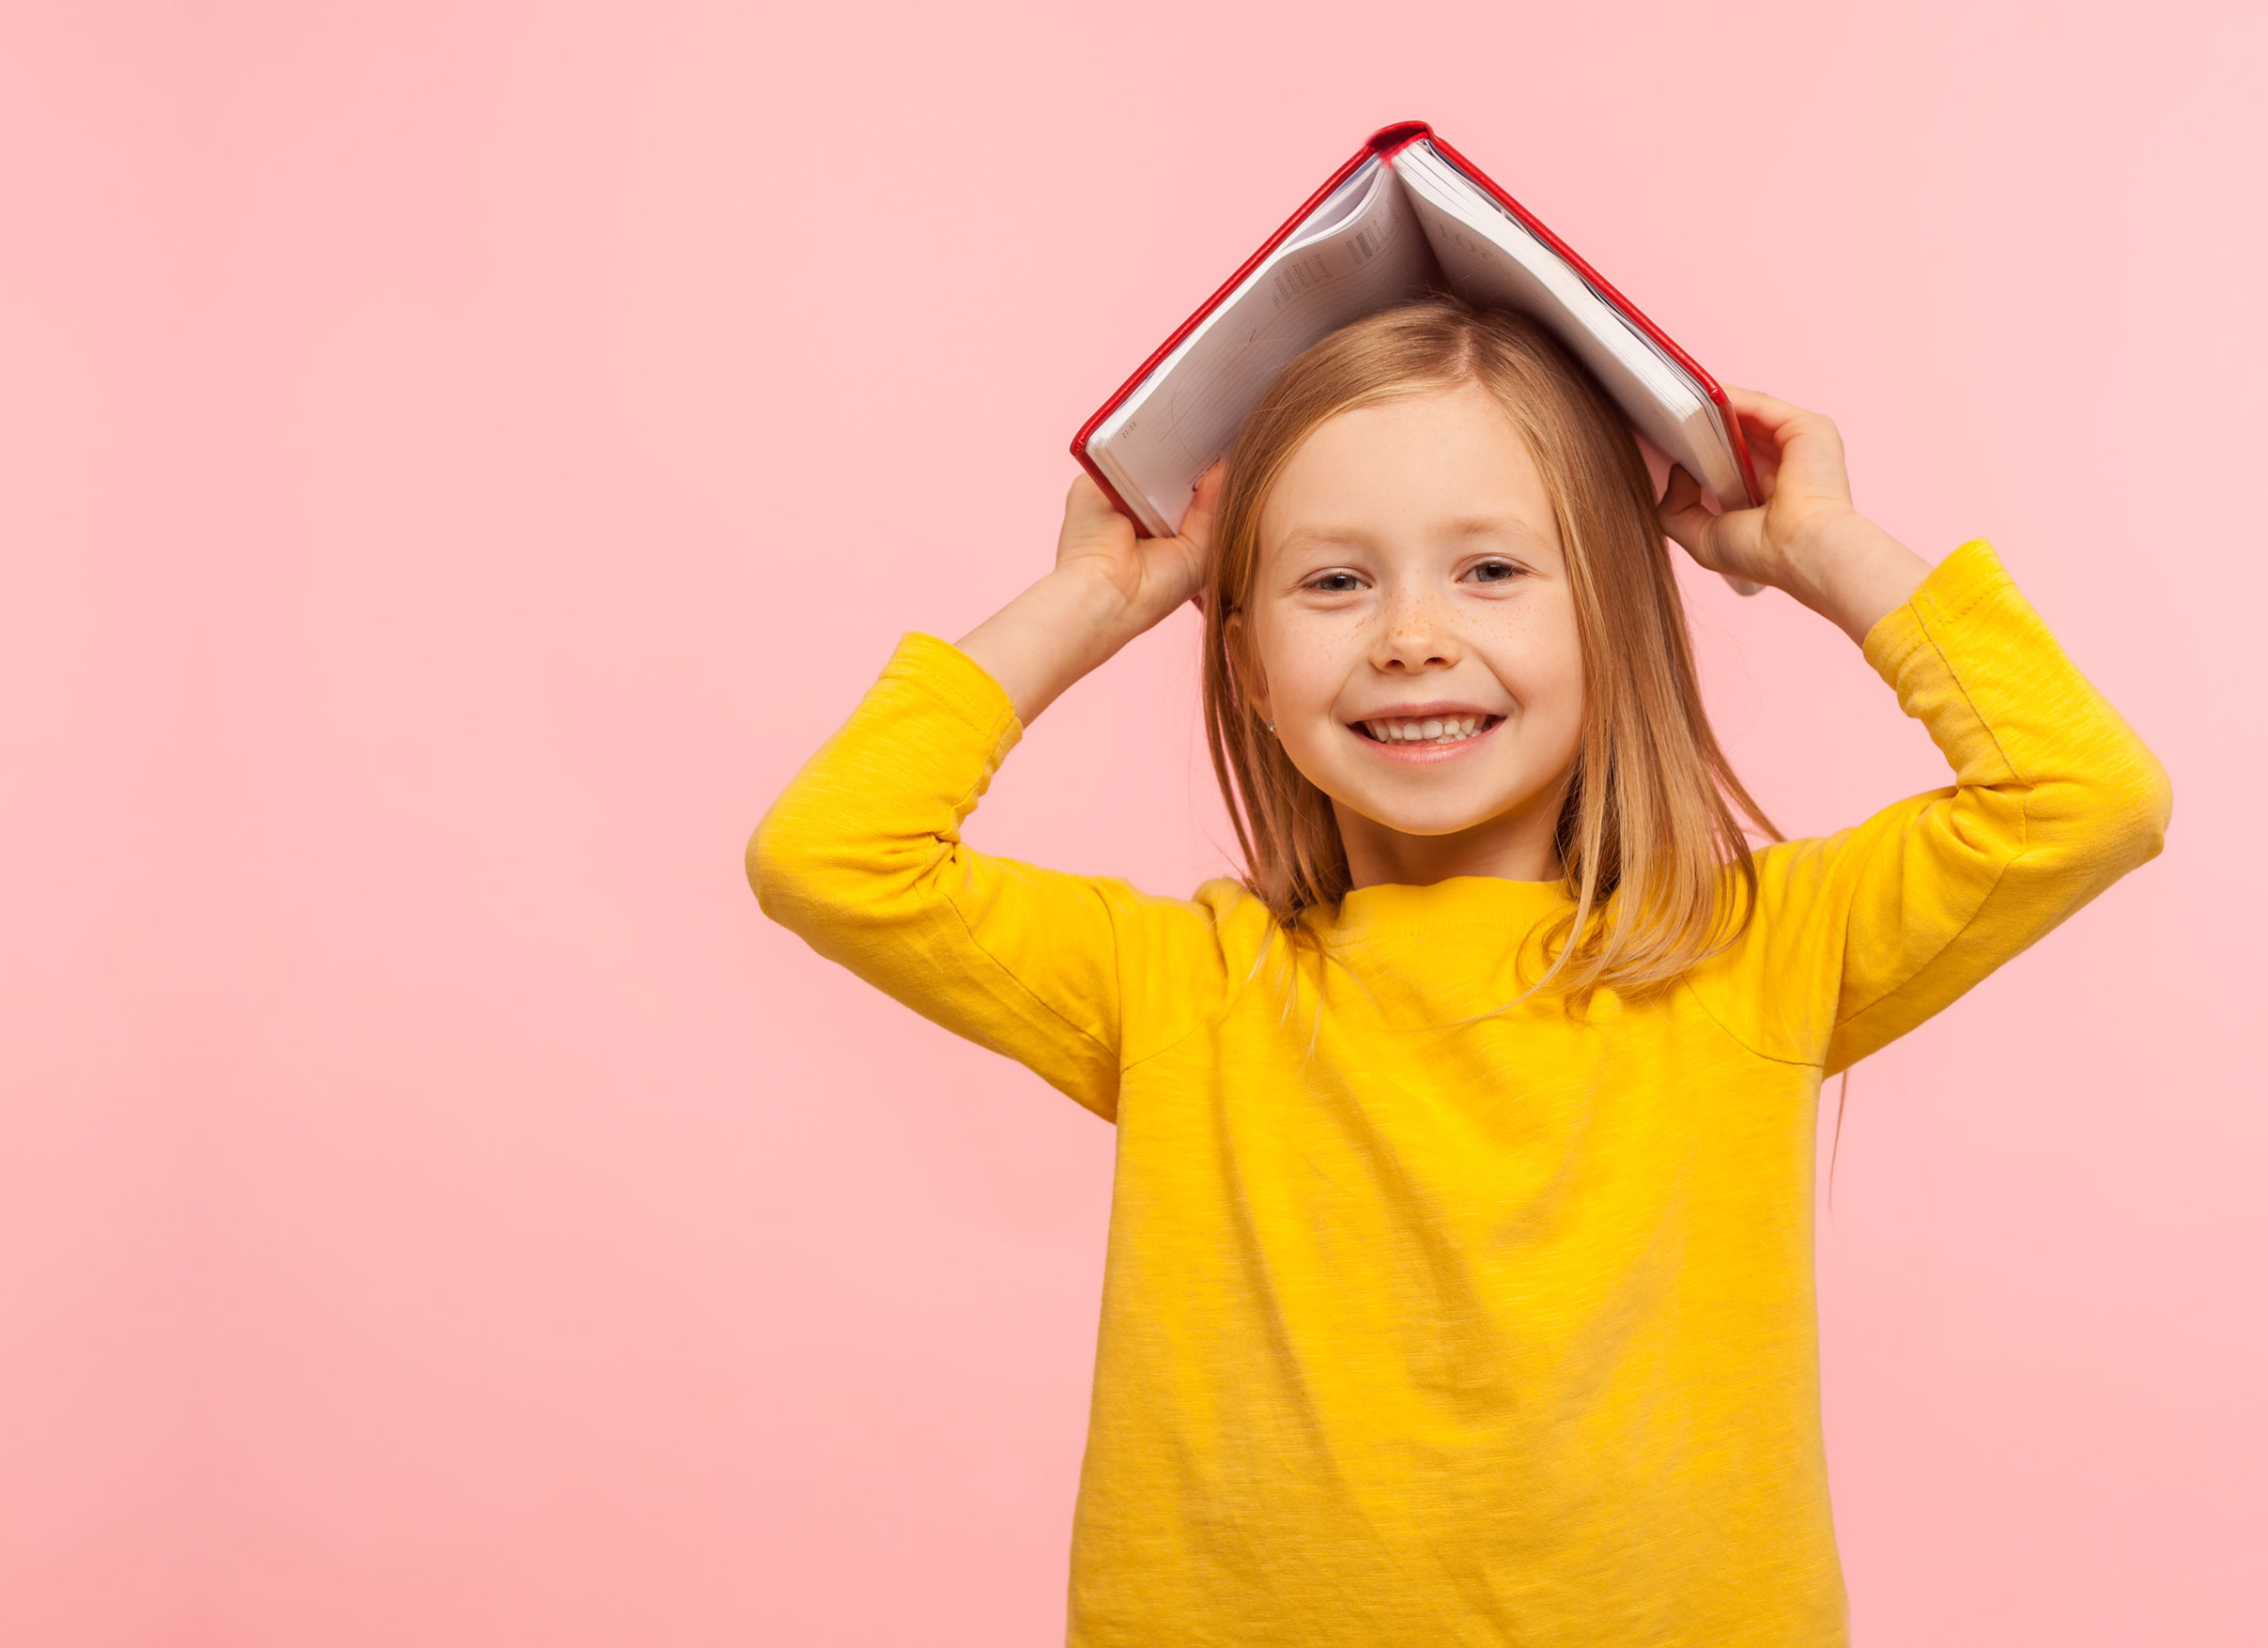 Smiling Caucasian girl in yellow top with hardcover book on her head